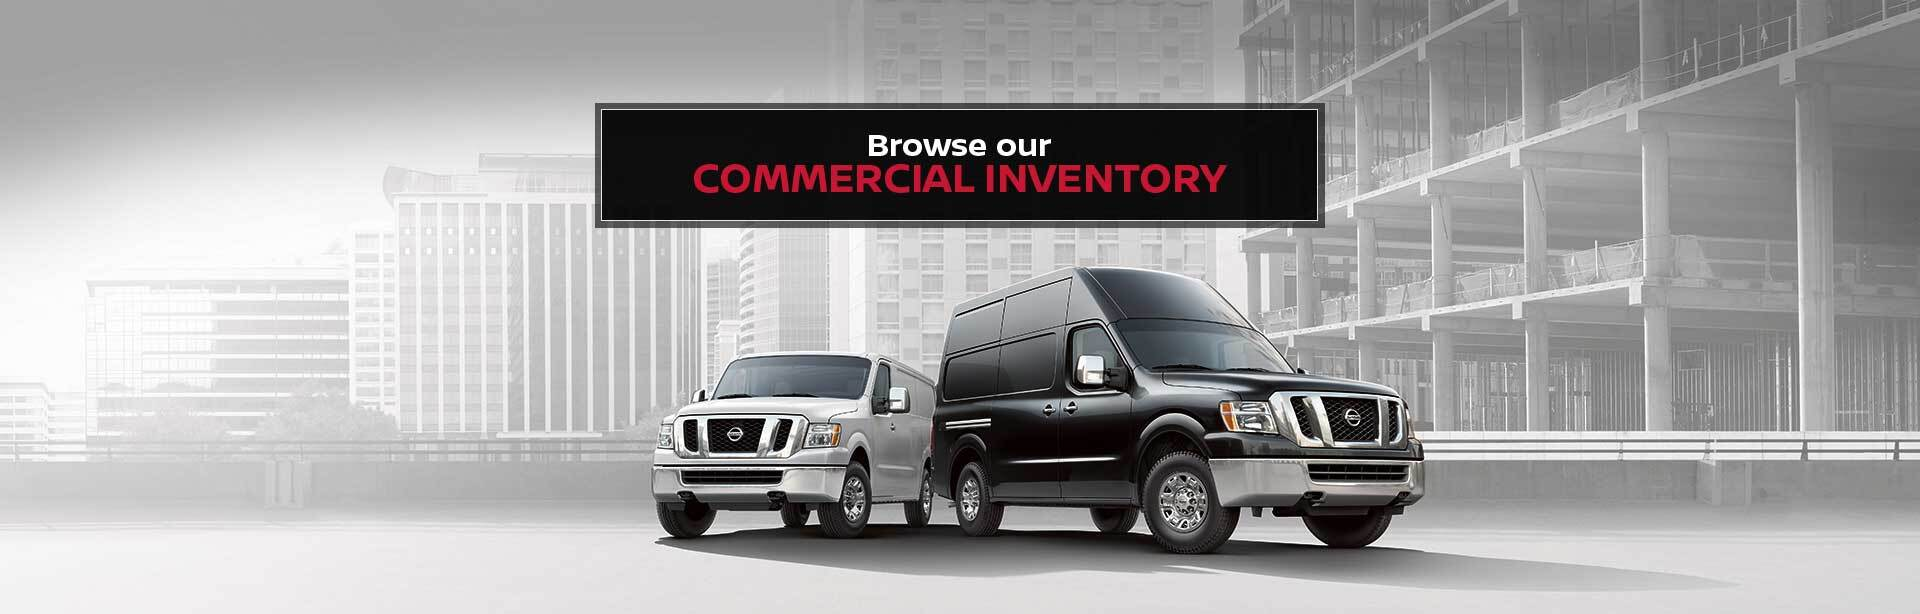 Commercial Inventory at Arlington Nissan Commercial